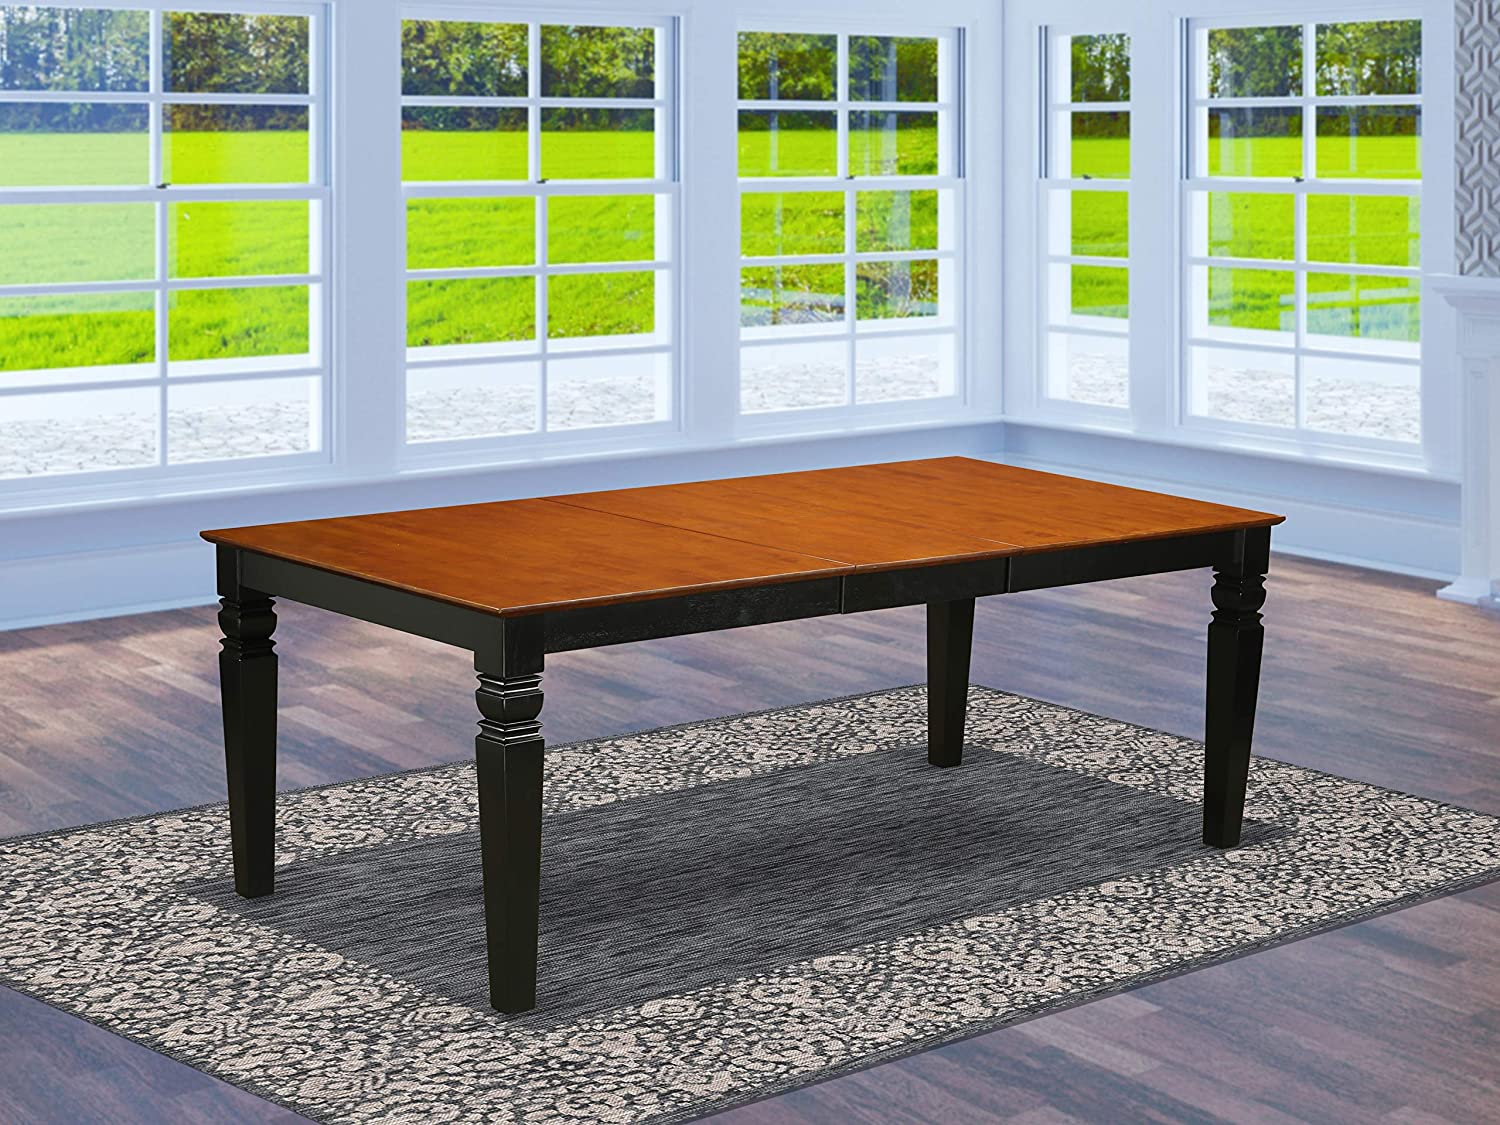 Logan Dining Table with Wood Seat – Black Cherry Finish.